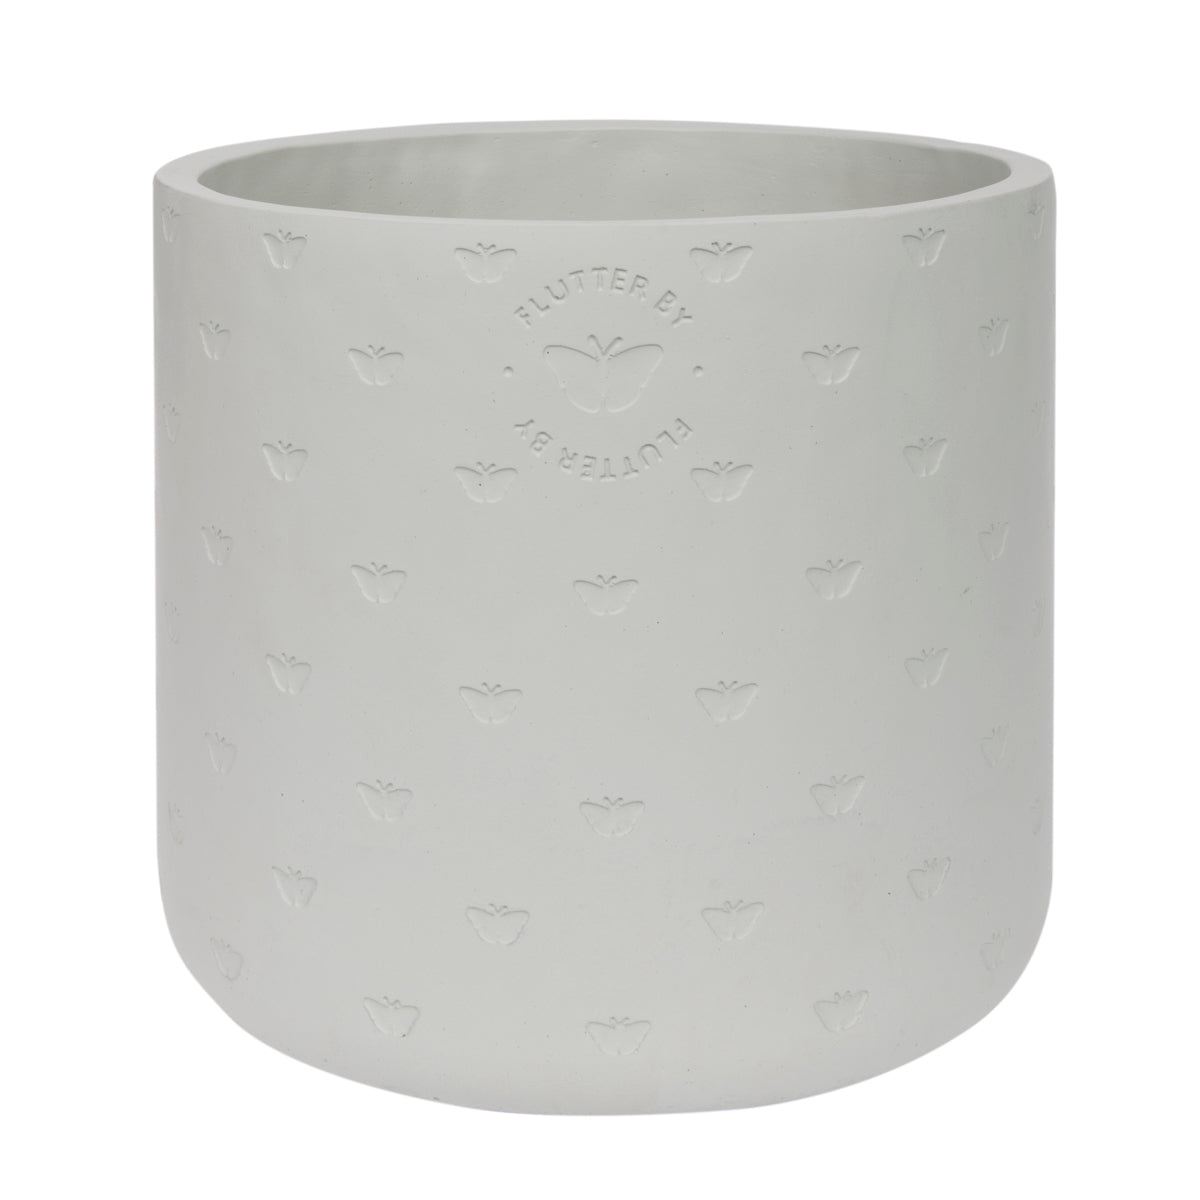 A light grey plant pot made from cement part of Sophie Allport's Butterflies collection